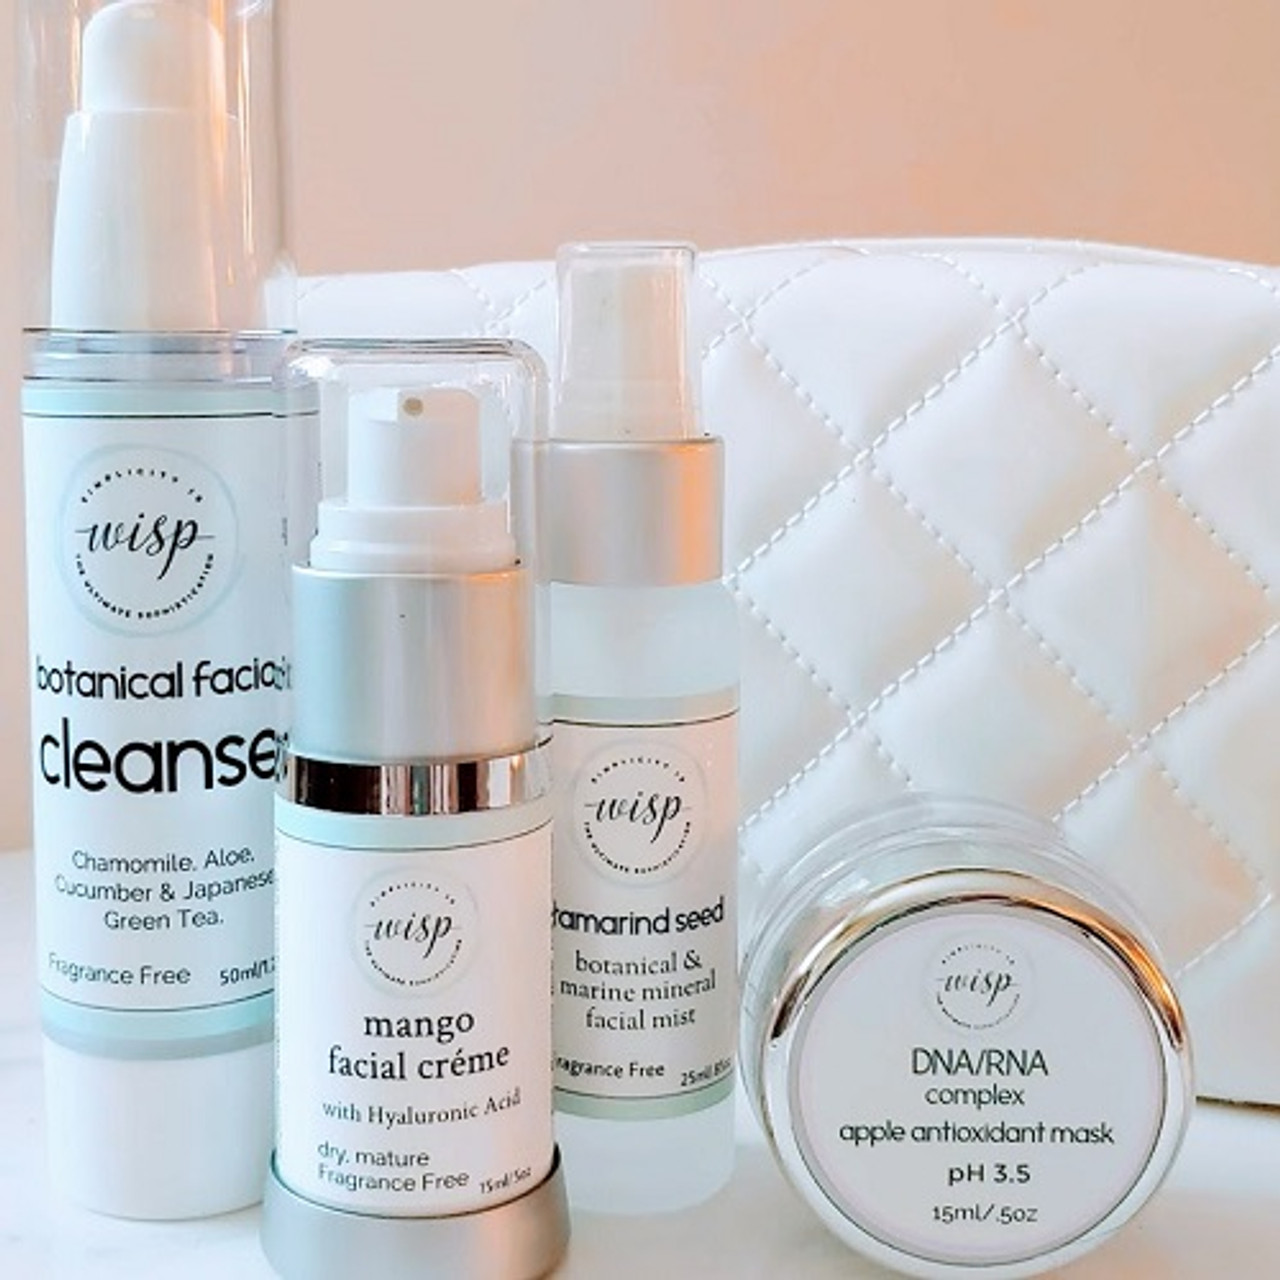 Wisp's essential skincare it with mango facial creme, tamarind seed marine mineral mist, facial mask, botanical facial cleanse in elegant cosmetic bag